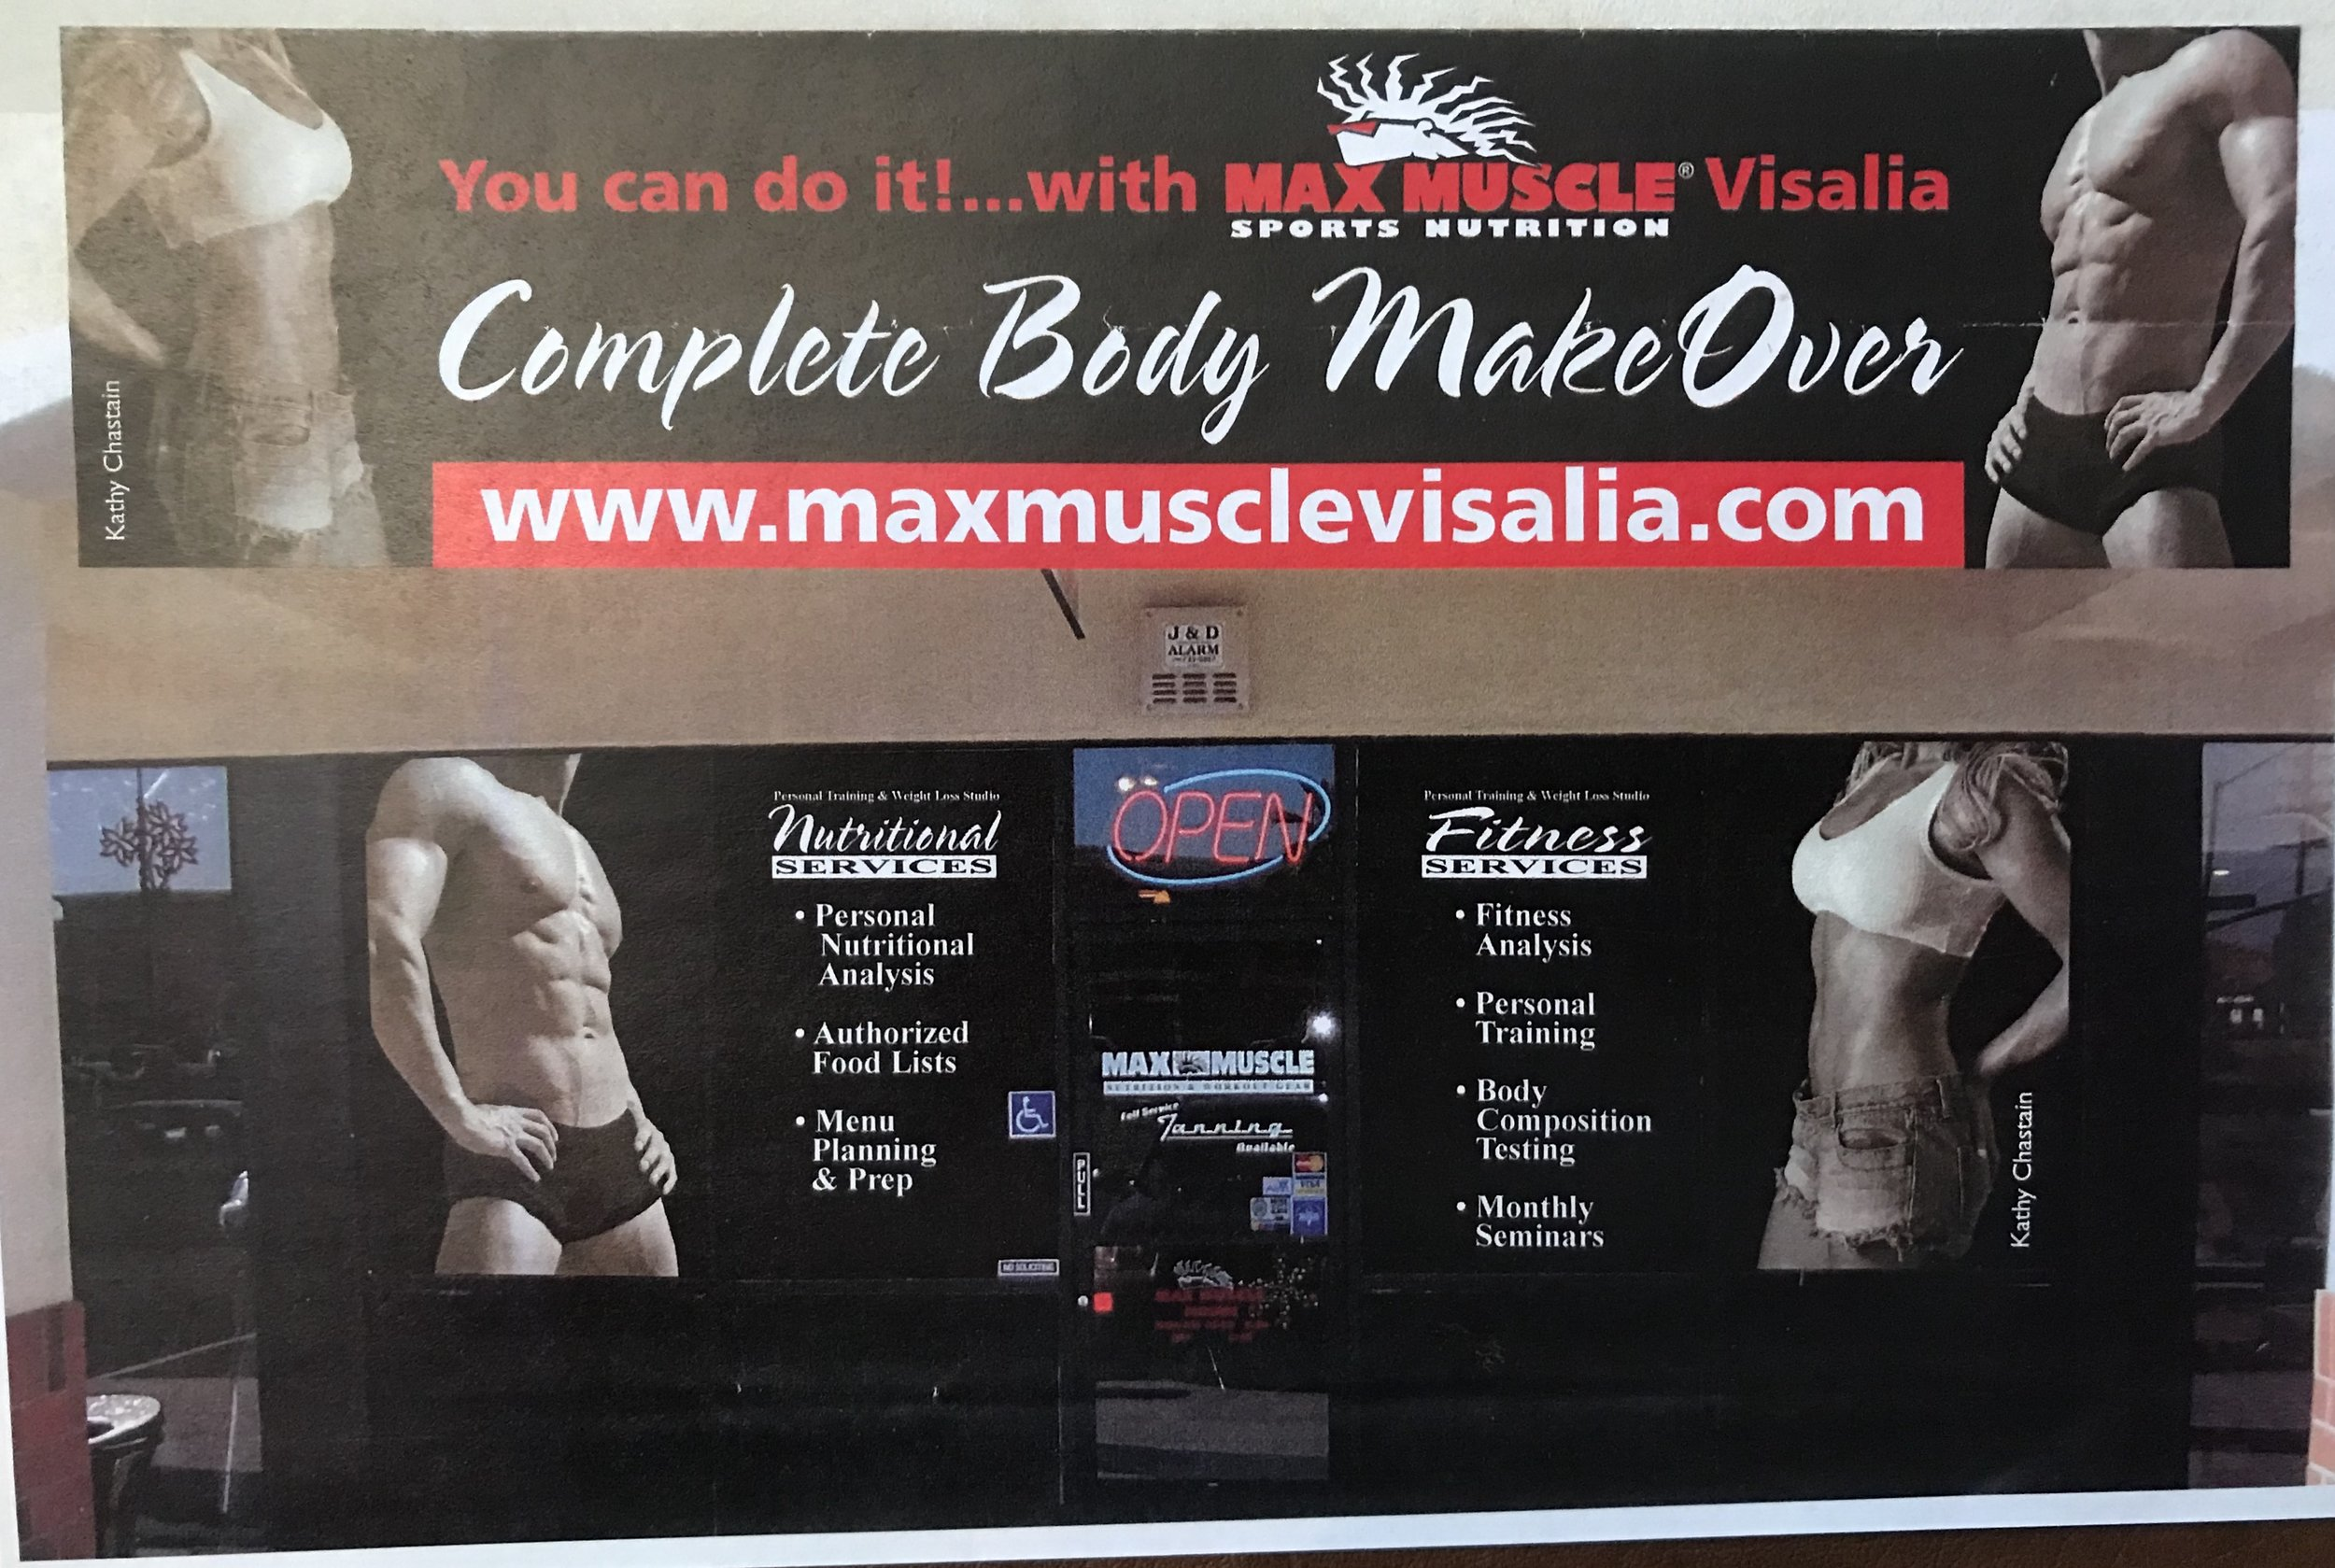 Max Muscle Visalia-Tulare - Built, Owned & Operated Max Muscle Sports Nutrition stores in both Visalia and Tulare. Previously owned Fresno location.Produced the first NPC Max Muscle Body Building Show in Fresno California and ran for three consecutive years. Brought the top names in Body Building to the Stage during our duration, including 8x Mr. Olympia Ronnie Coleman.Worked as a Fitness Model for Max Muscle & Gaspari Nutrition.